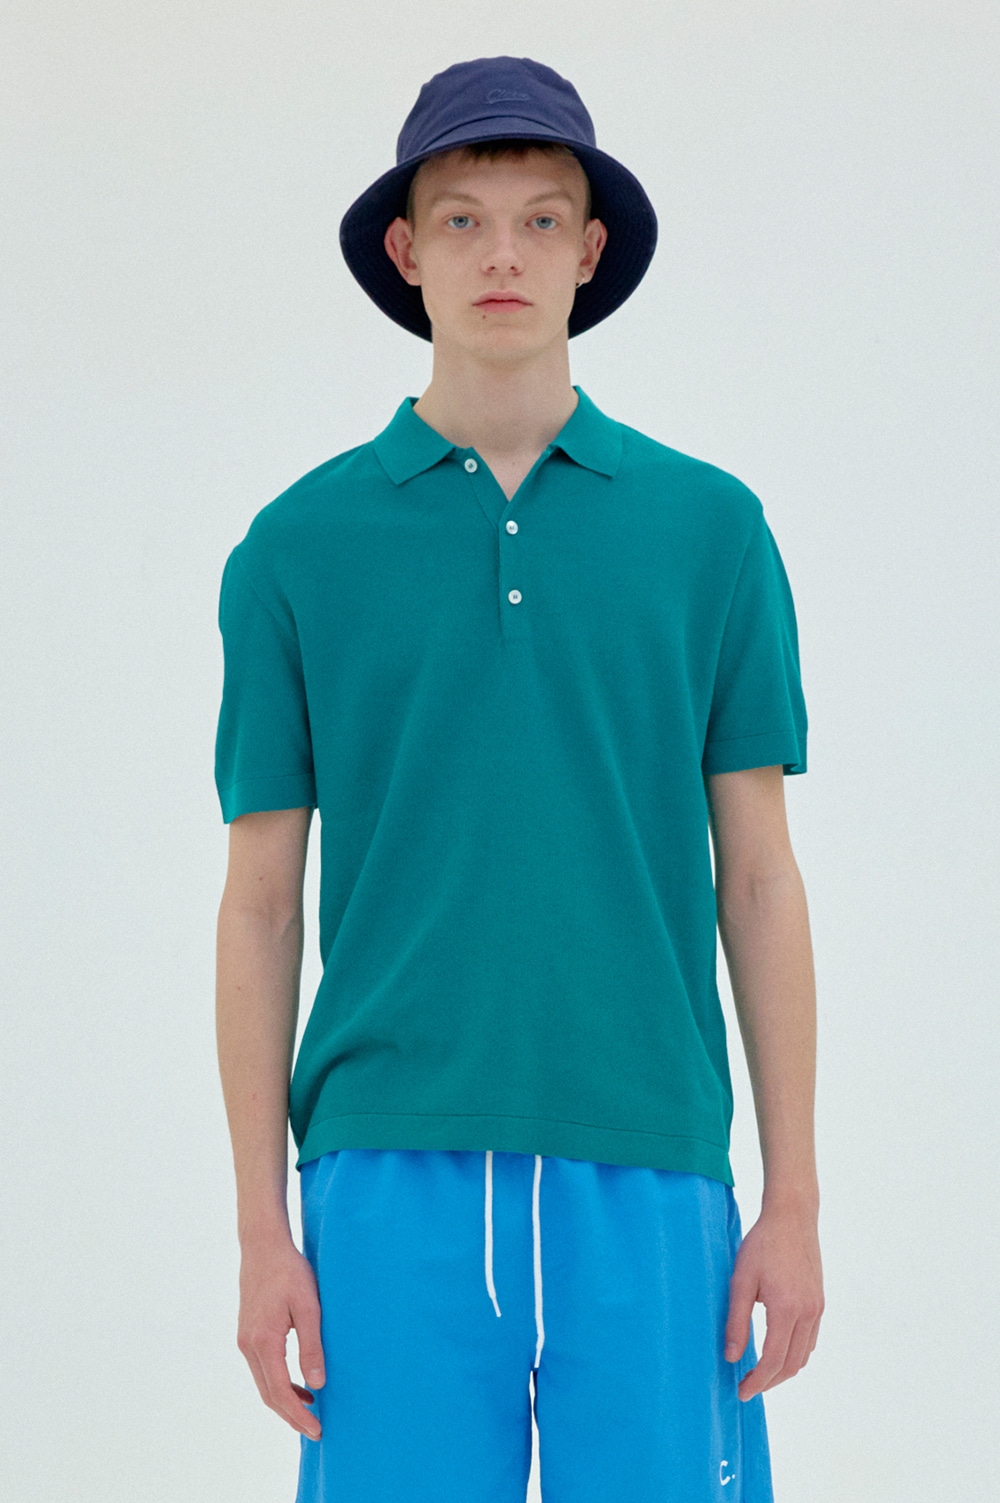 clove - Classic Knit Polo _Men  (Green)